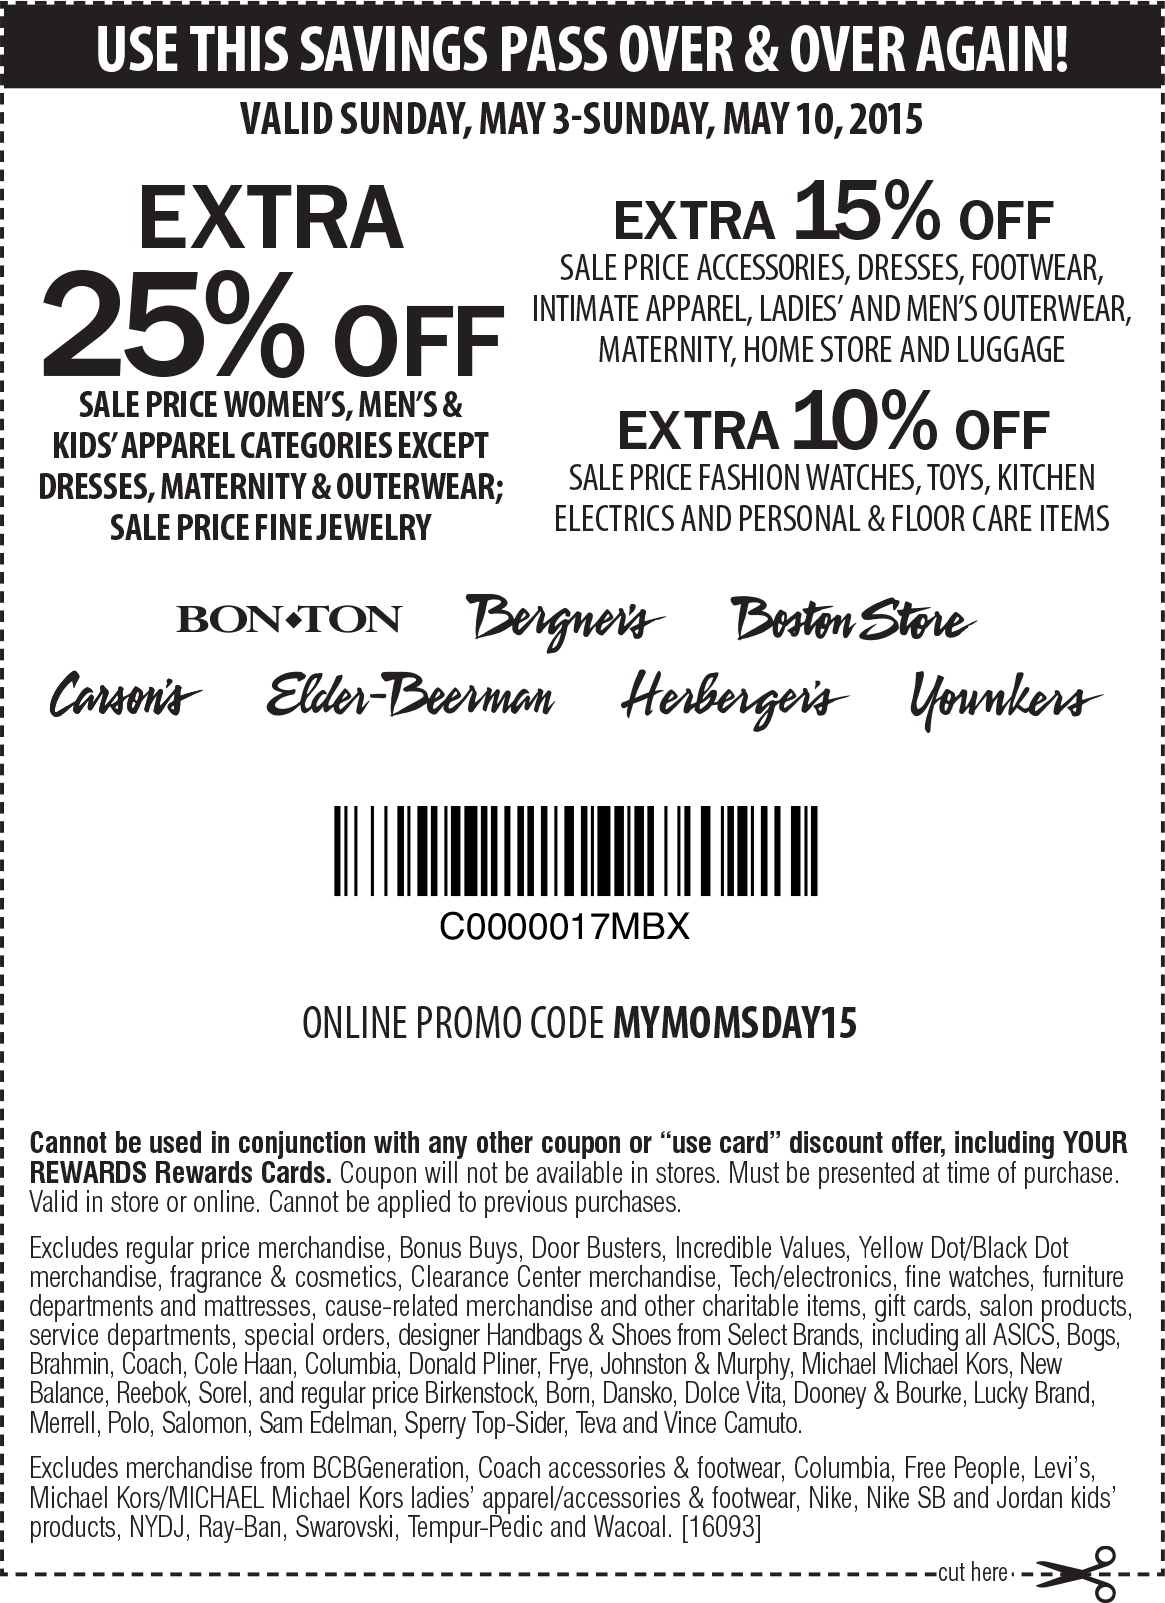 Carsons Coupon September 2017 Extra 25% off sale apparel at Carsons, Bon Ton & sister stores, or online via promo code MYMOMSDAY15